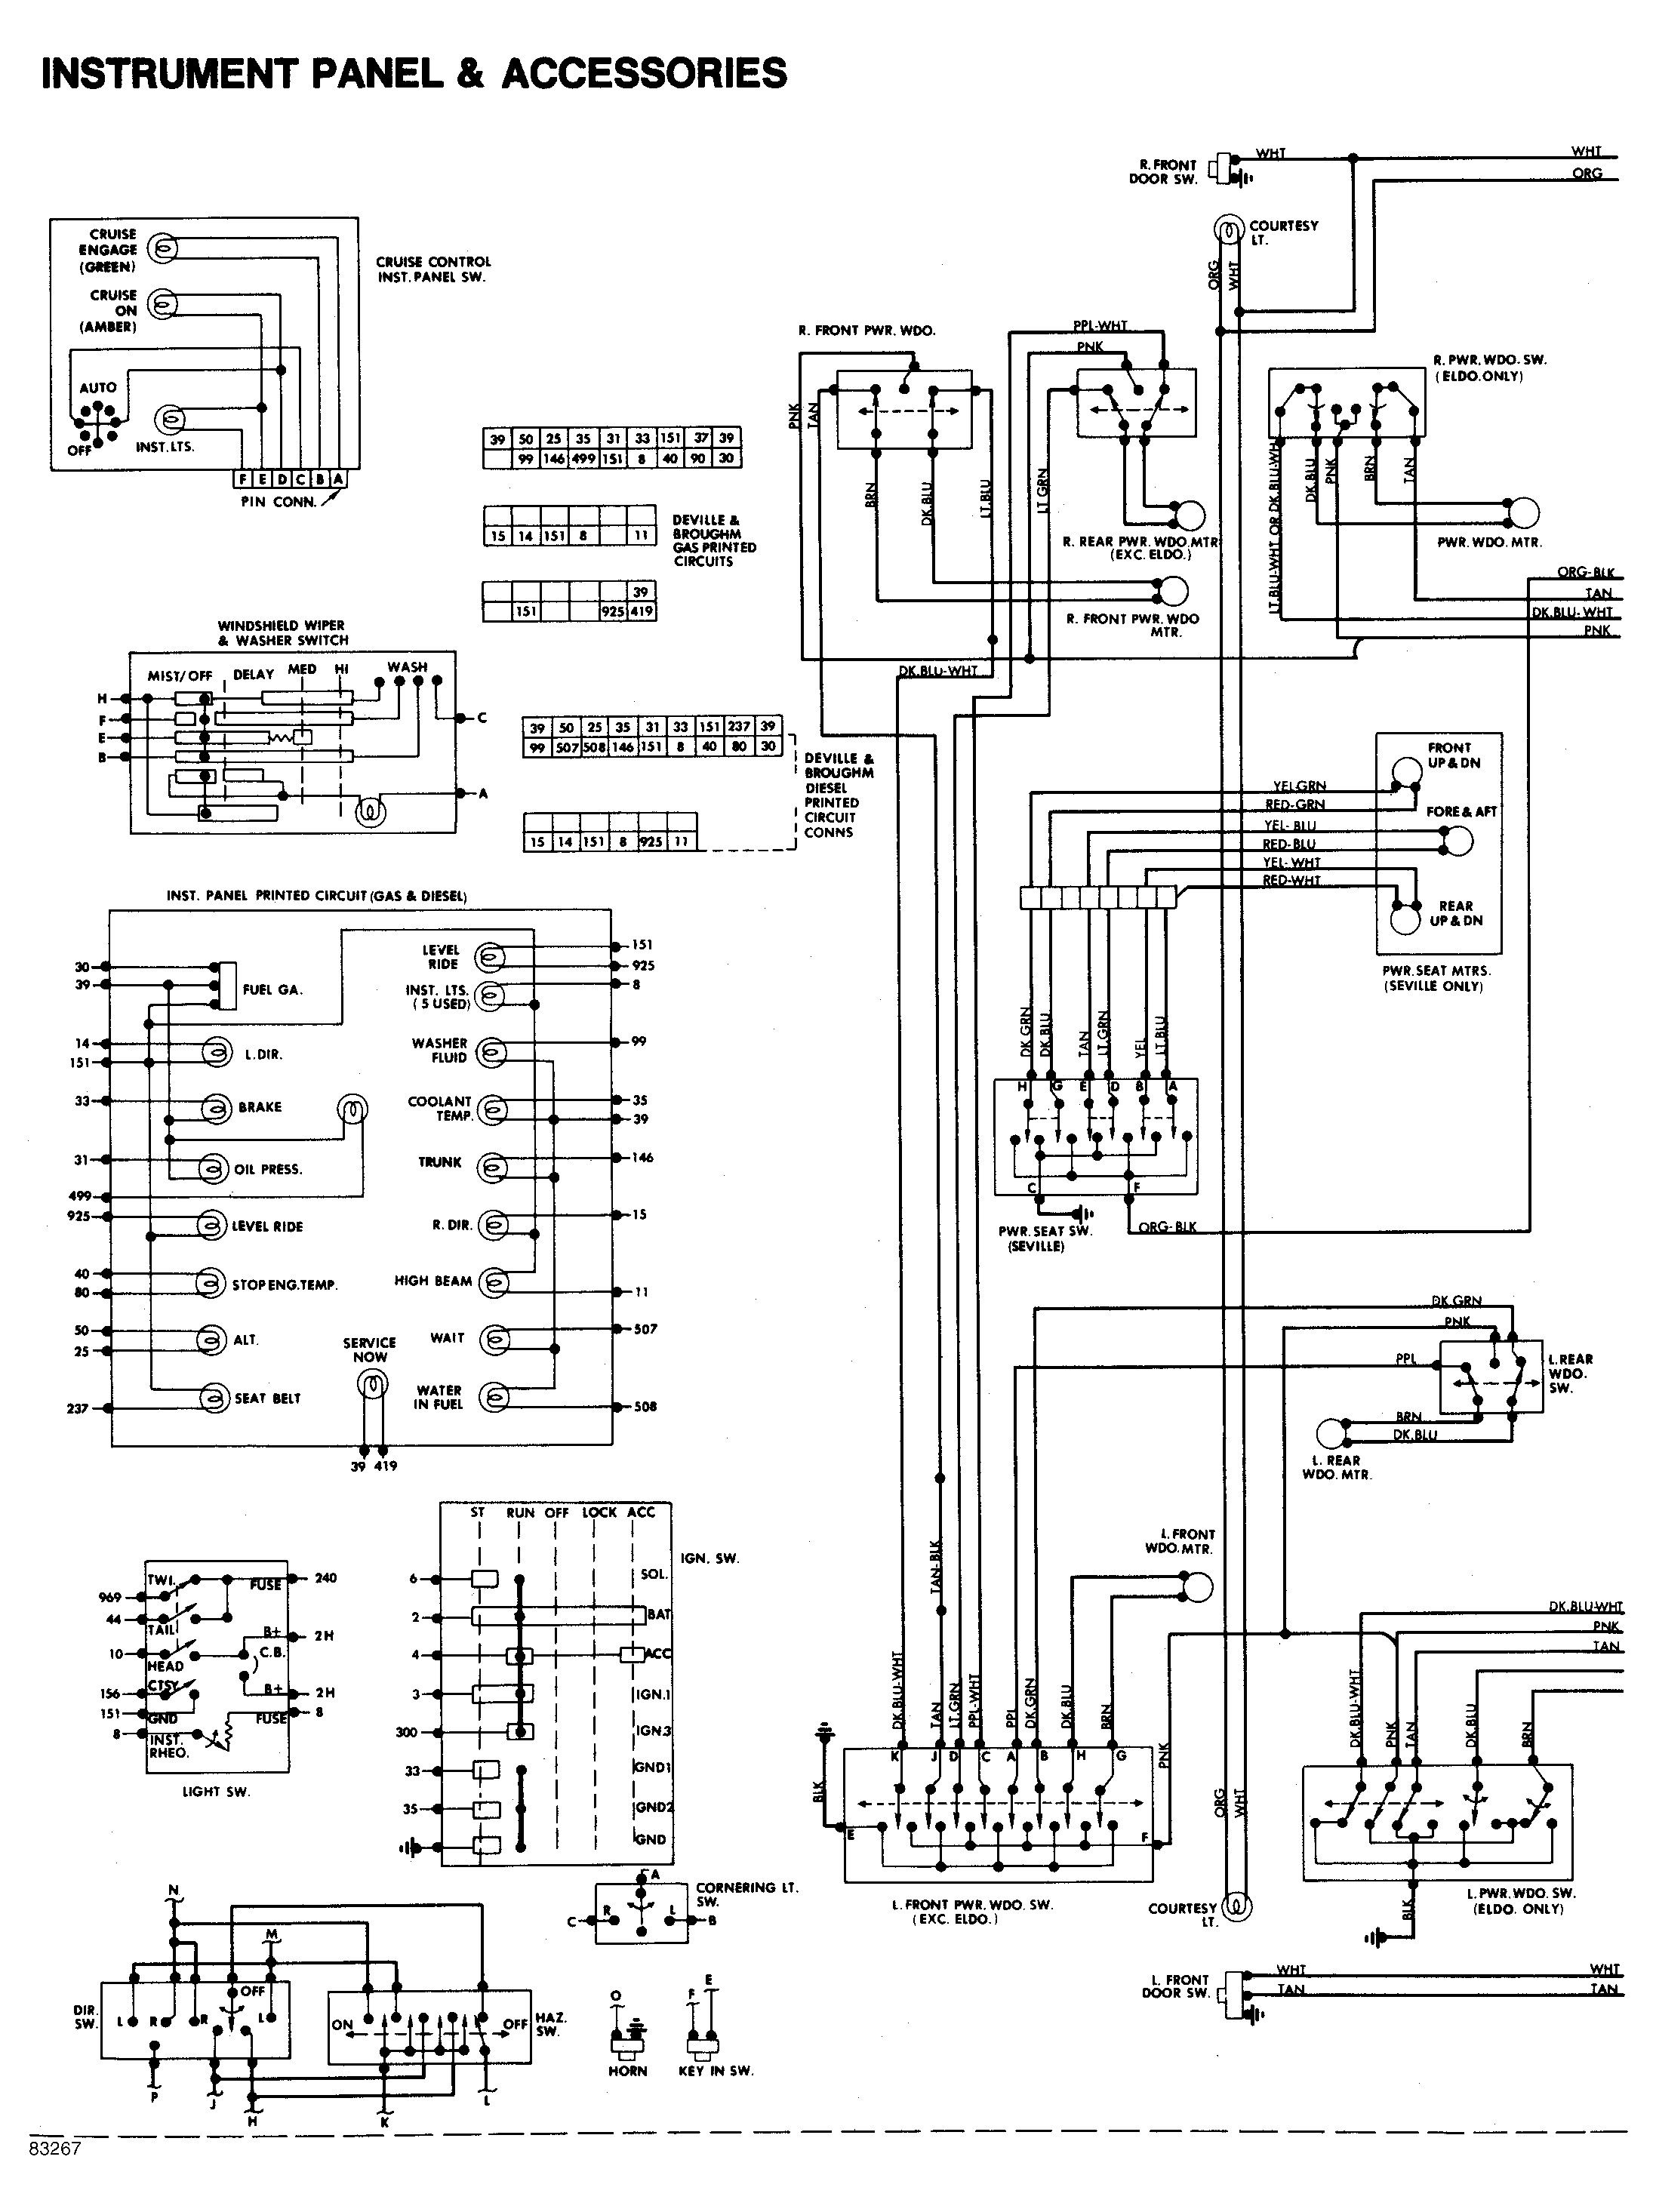 2000 Honda Accord Radio Wiring Diagram Fresh Daewoo Leganza ... on